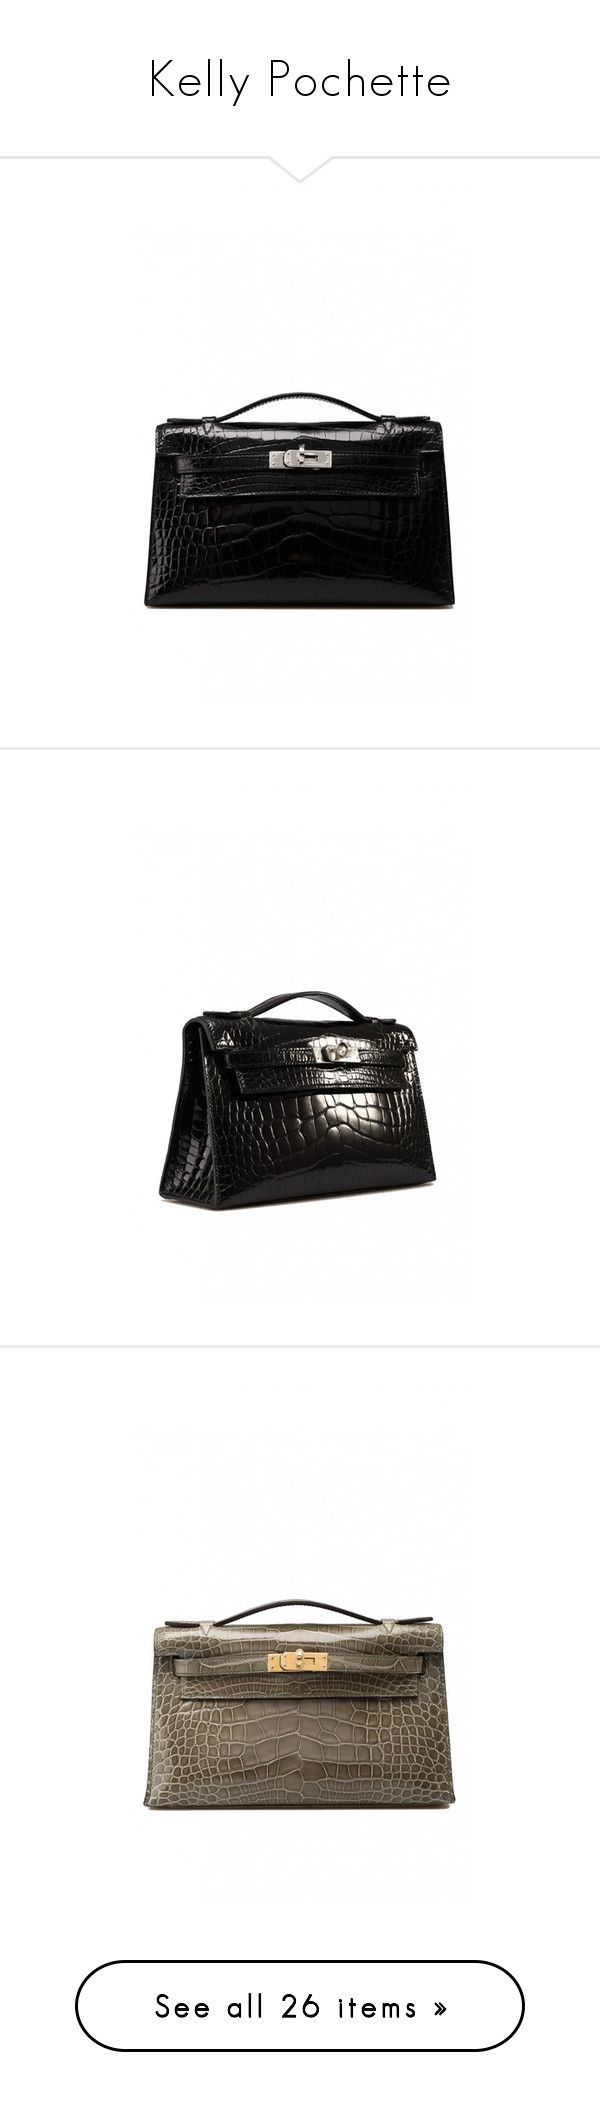 """Kelly Pochette"" by cherhorowitz95 ❤ liked on Polyvore featuring bags, handbags, clutches, mini pochette, crocodile embossed handbags, croco handbag, mini handbags, crocodile handbags, alligator handbags and crocodile purse"